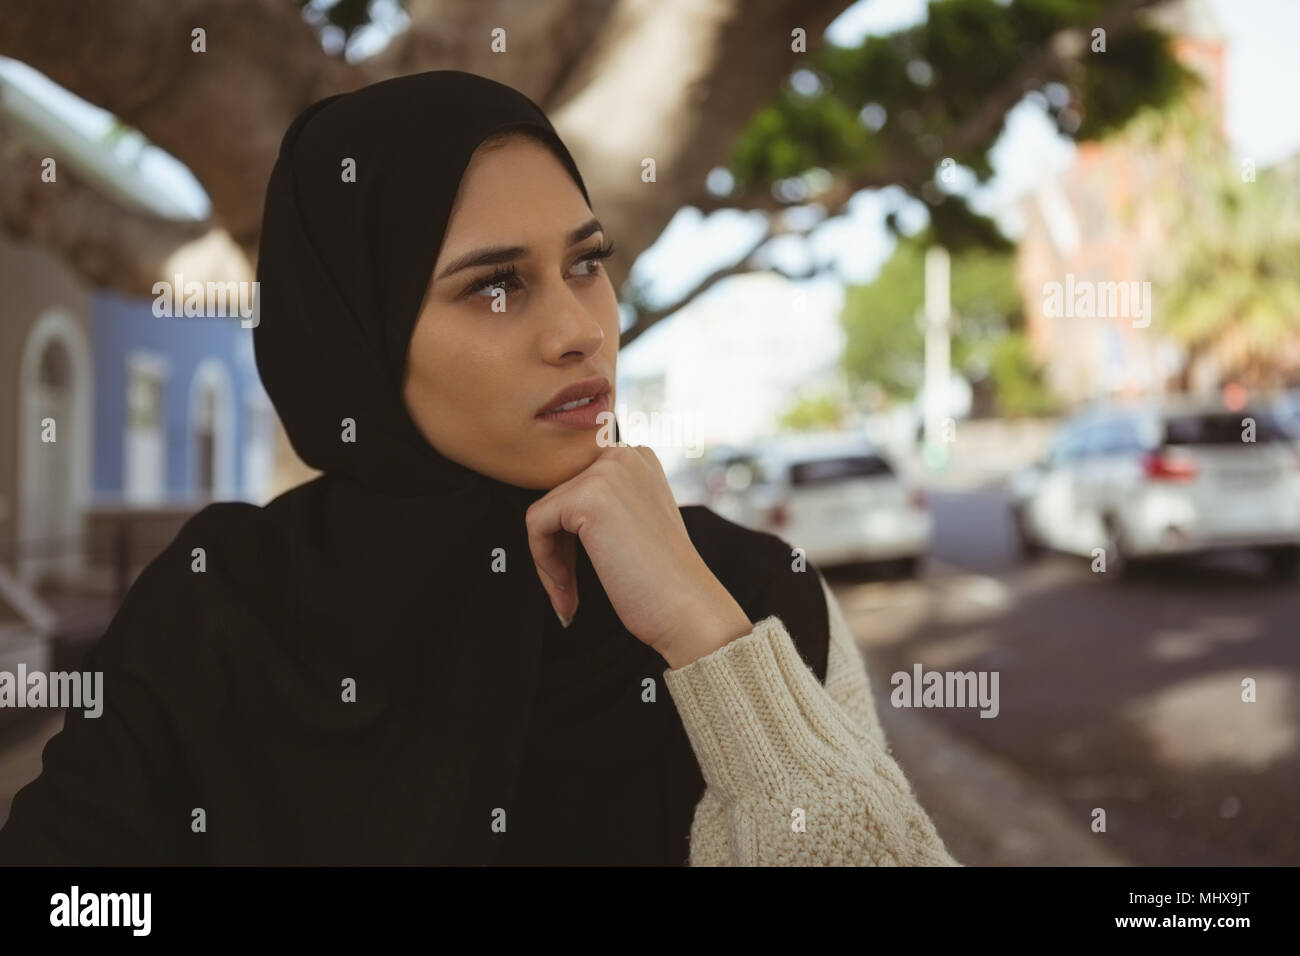 Thoughtful hijab woman at pavement cafe - Stock Image